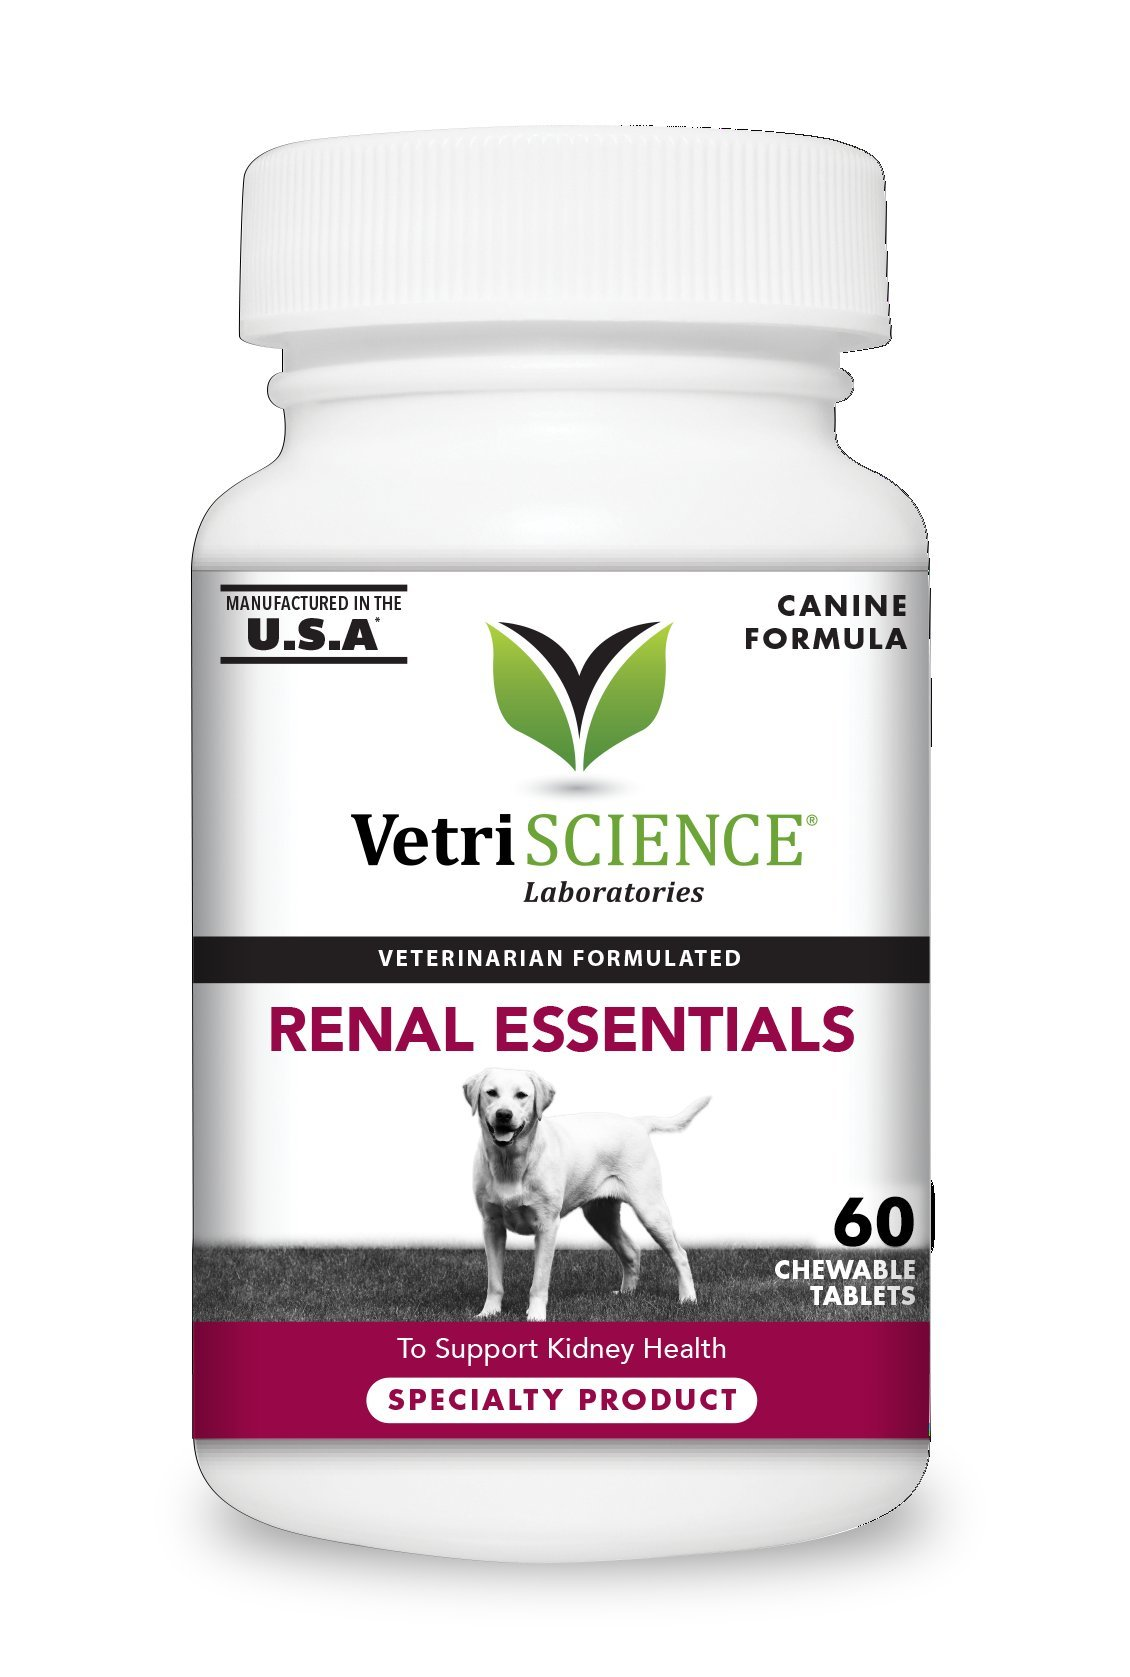 VetriScience Laboratories Renal Essentials Kidney Health Support for Dogs, 60 Chewable Tablets